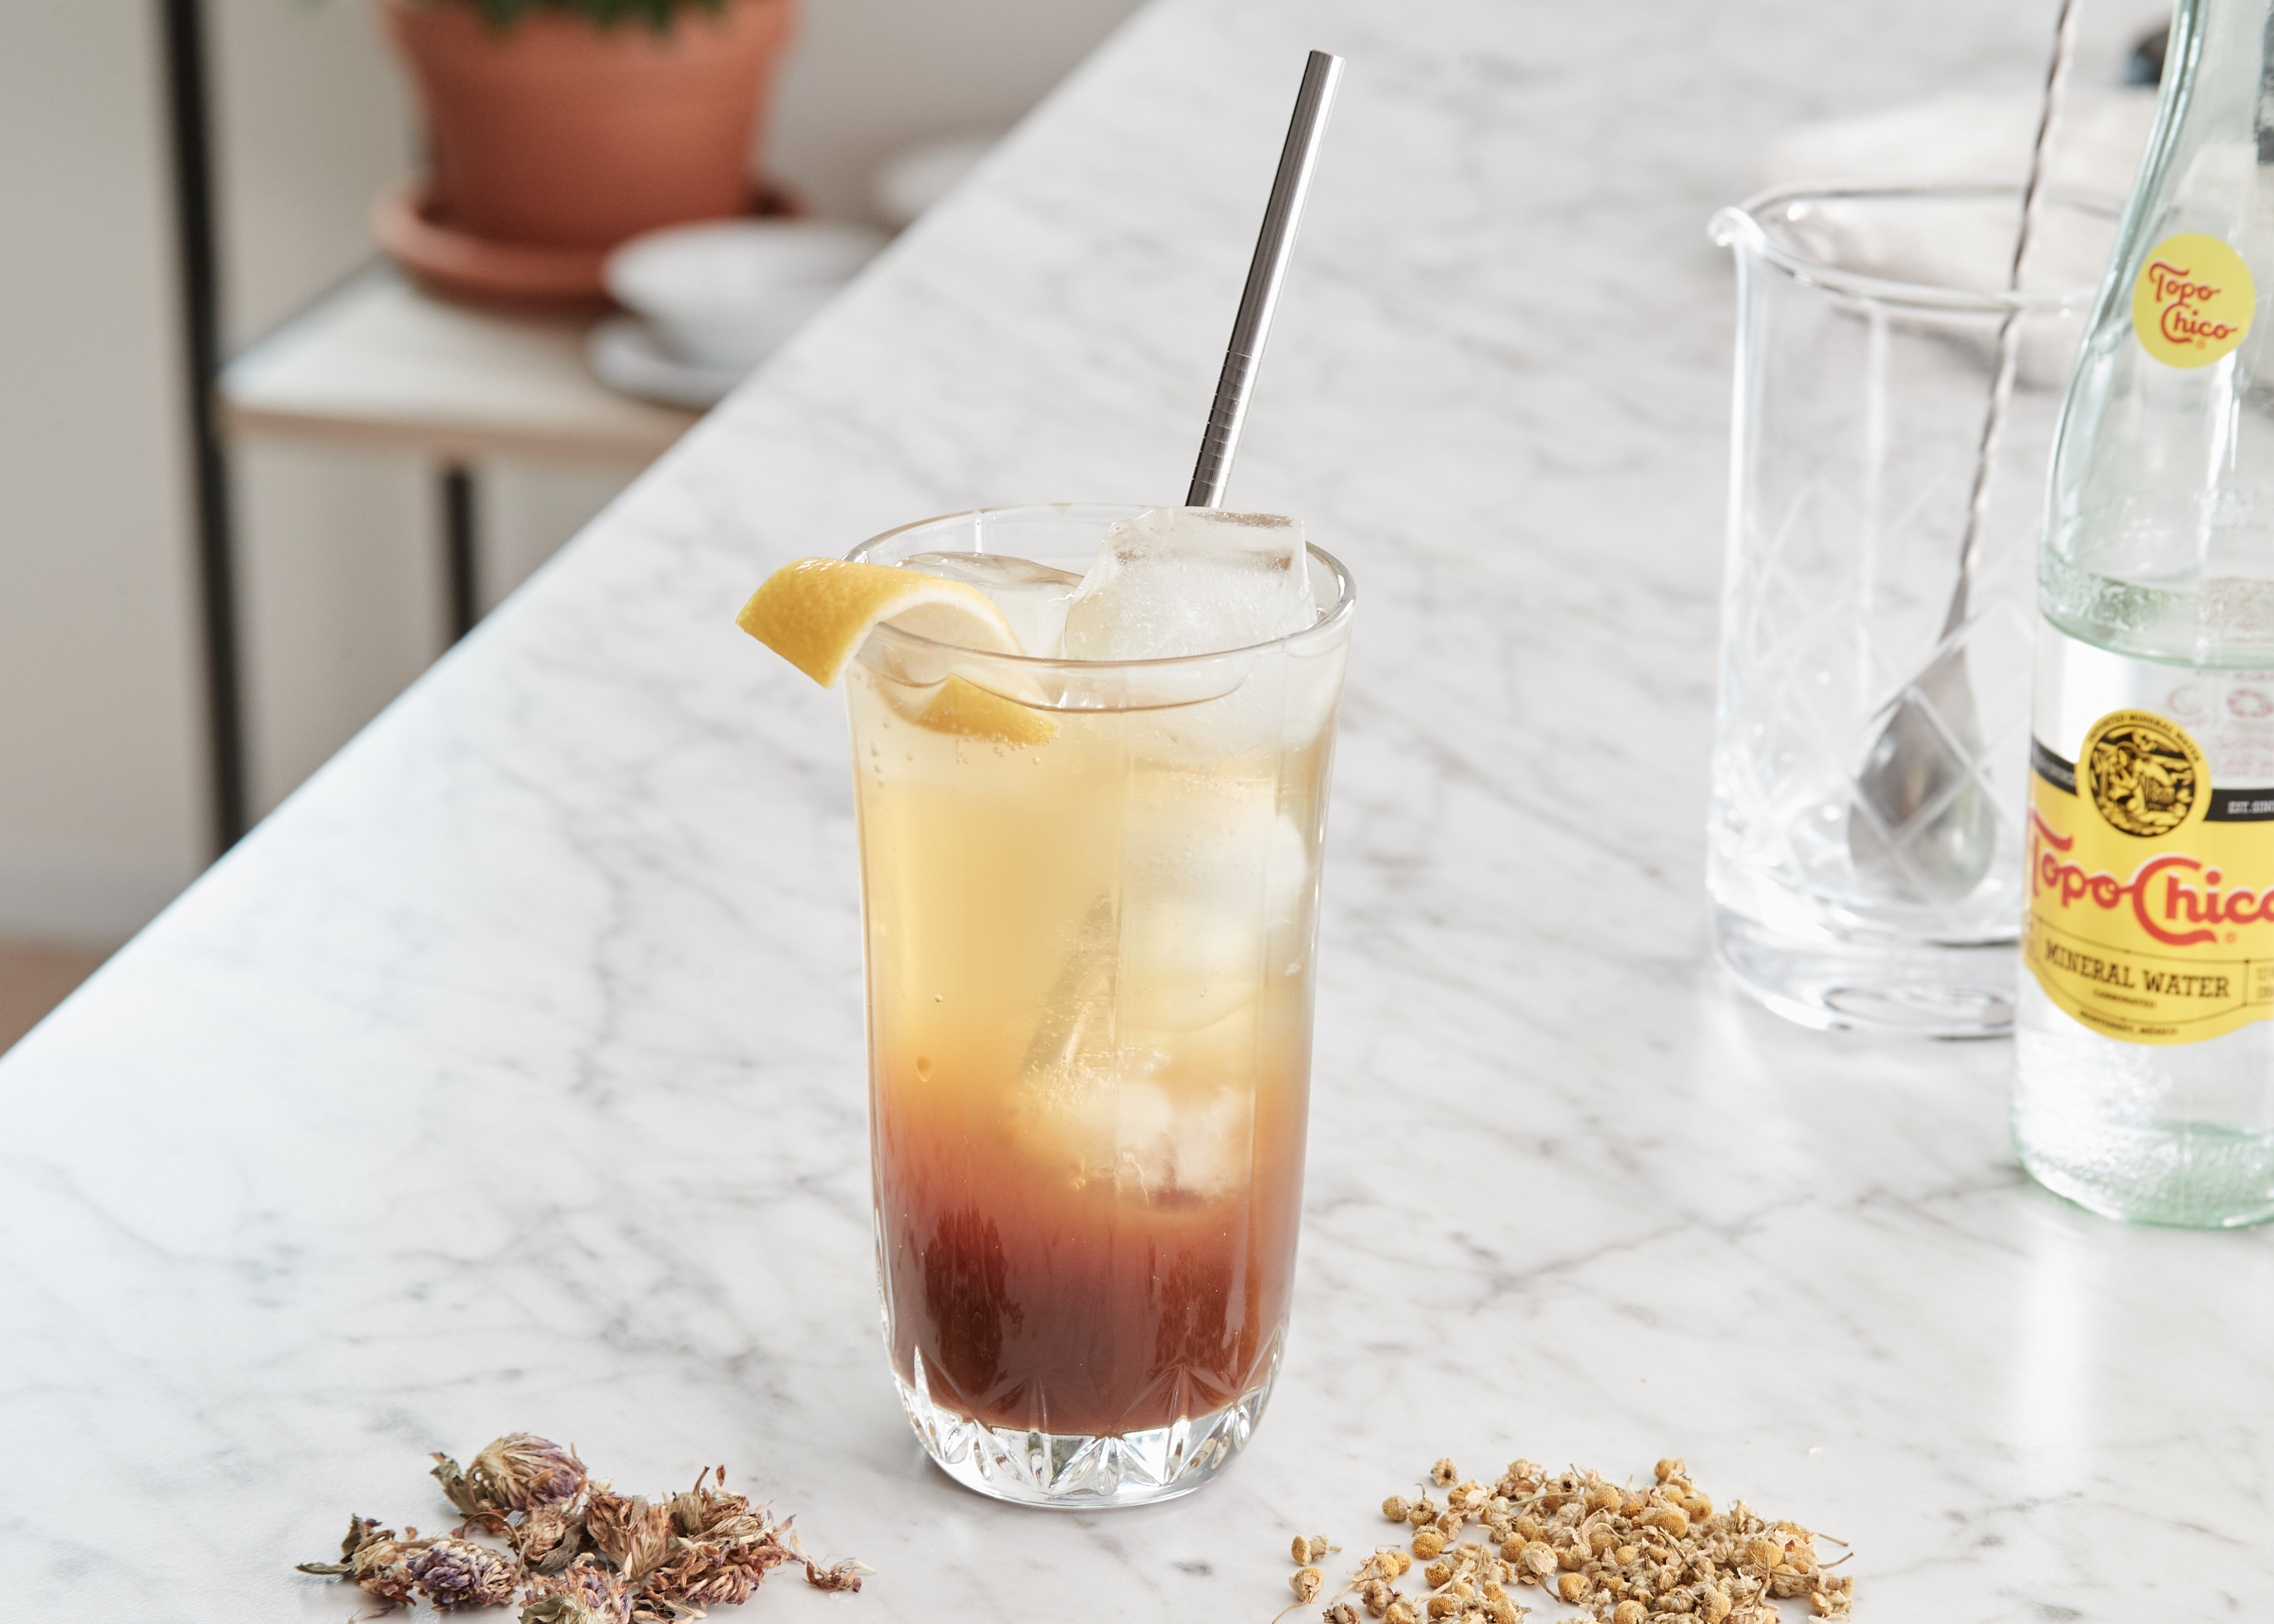 Wildflower Coffee Soda, with chamomile and red clover, topo chico, and mixing glass